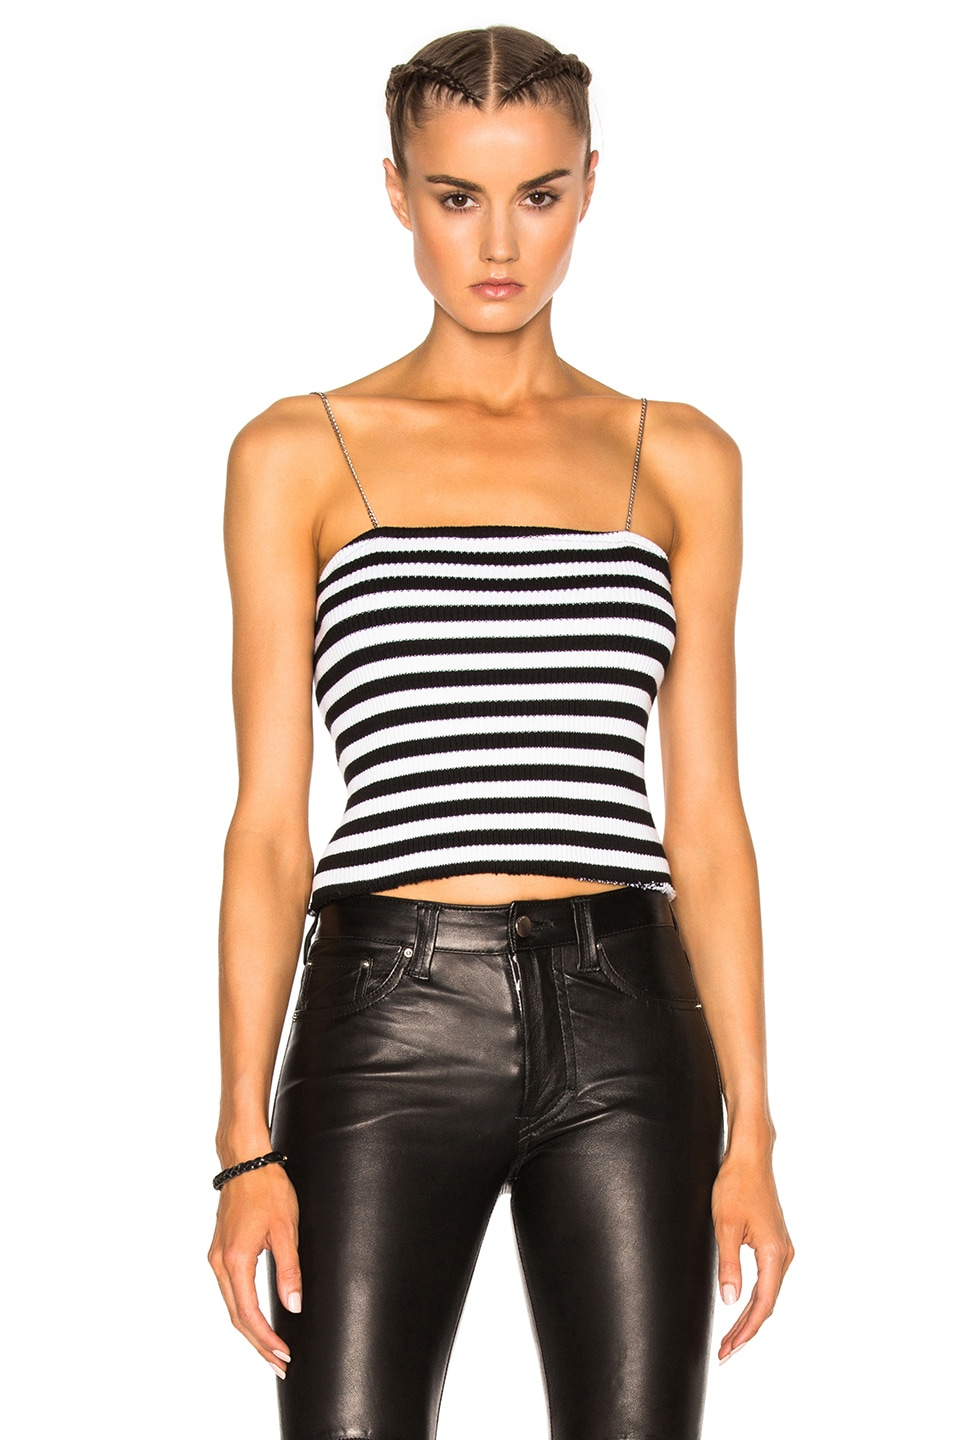 Black and White Tube Top